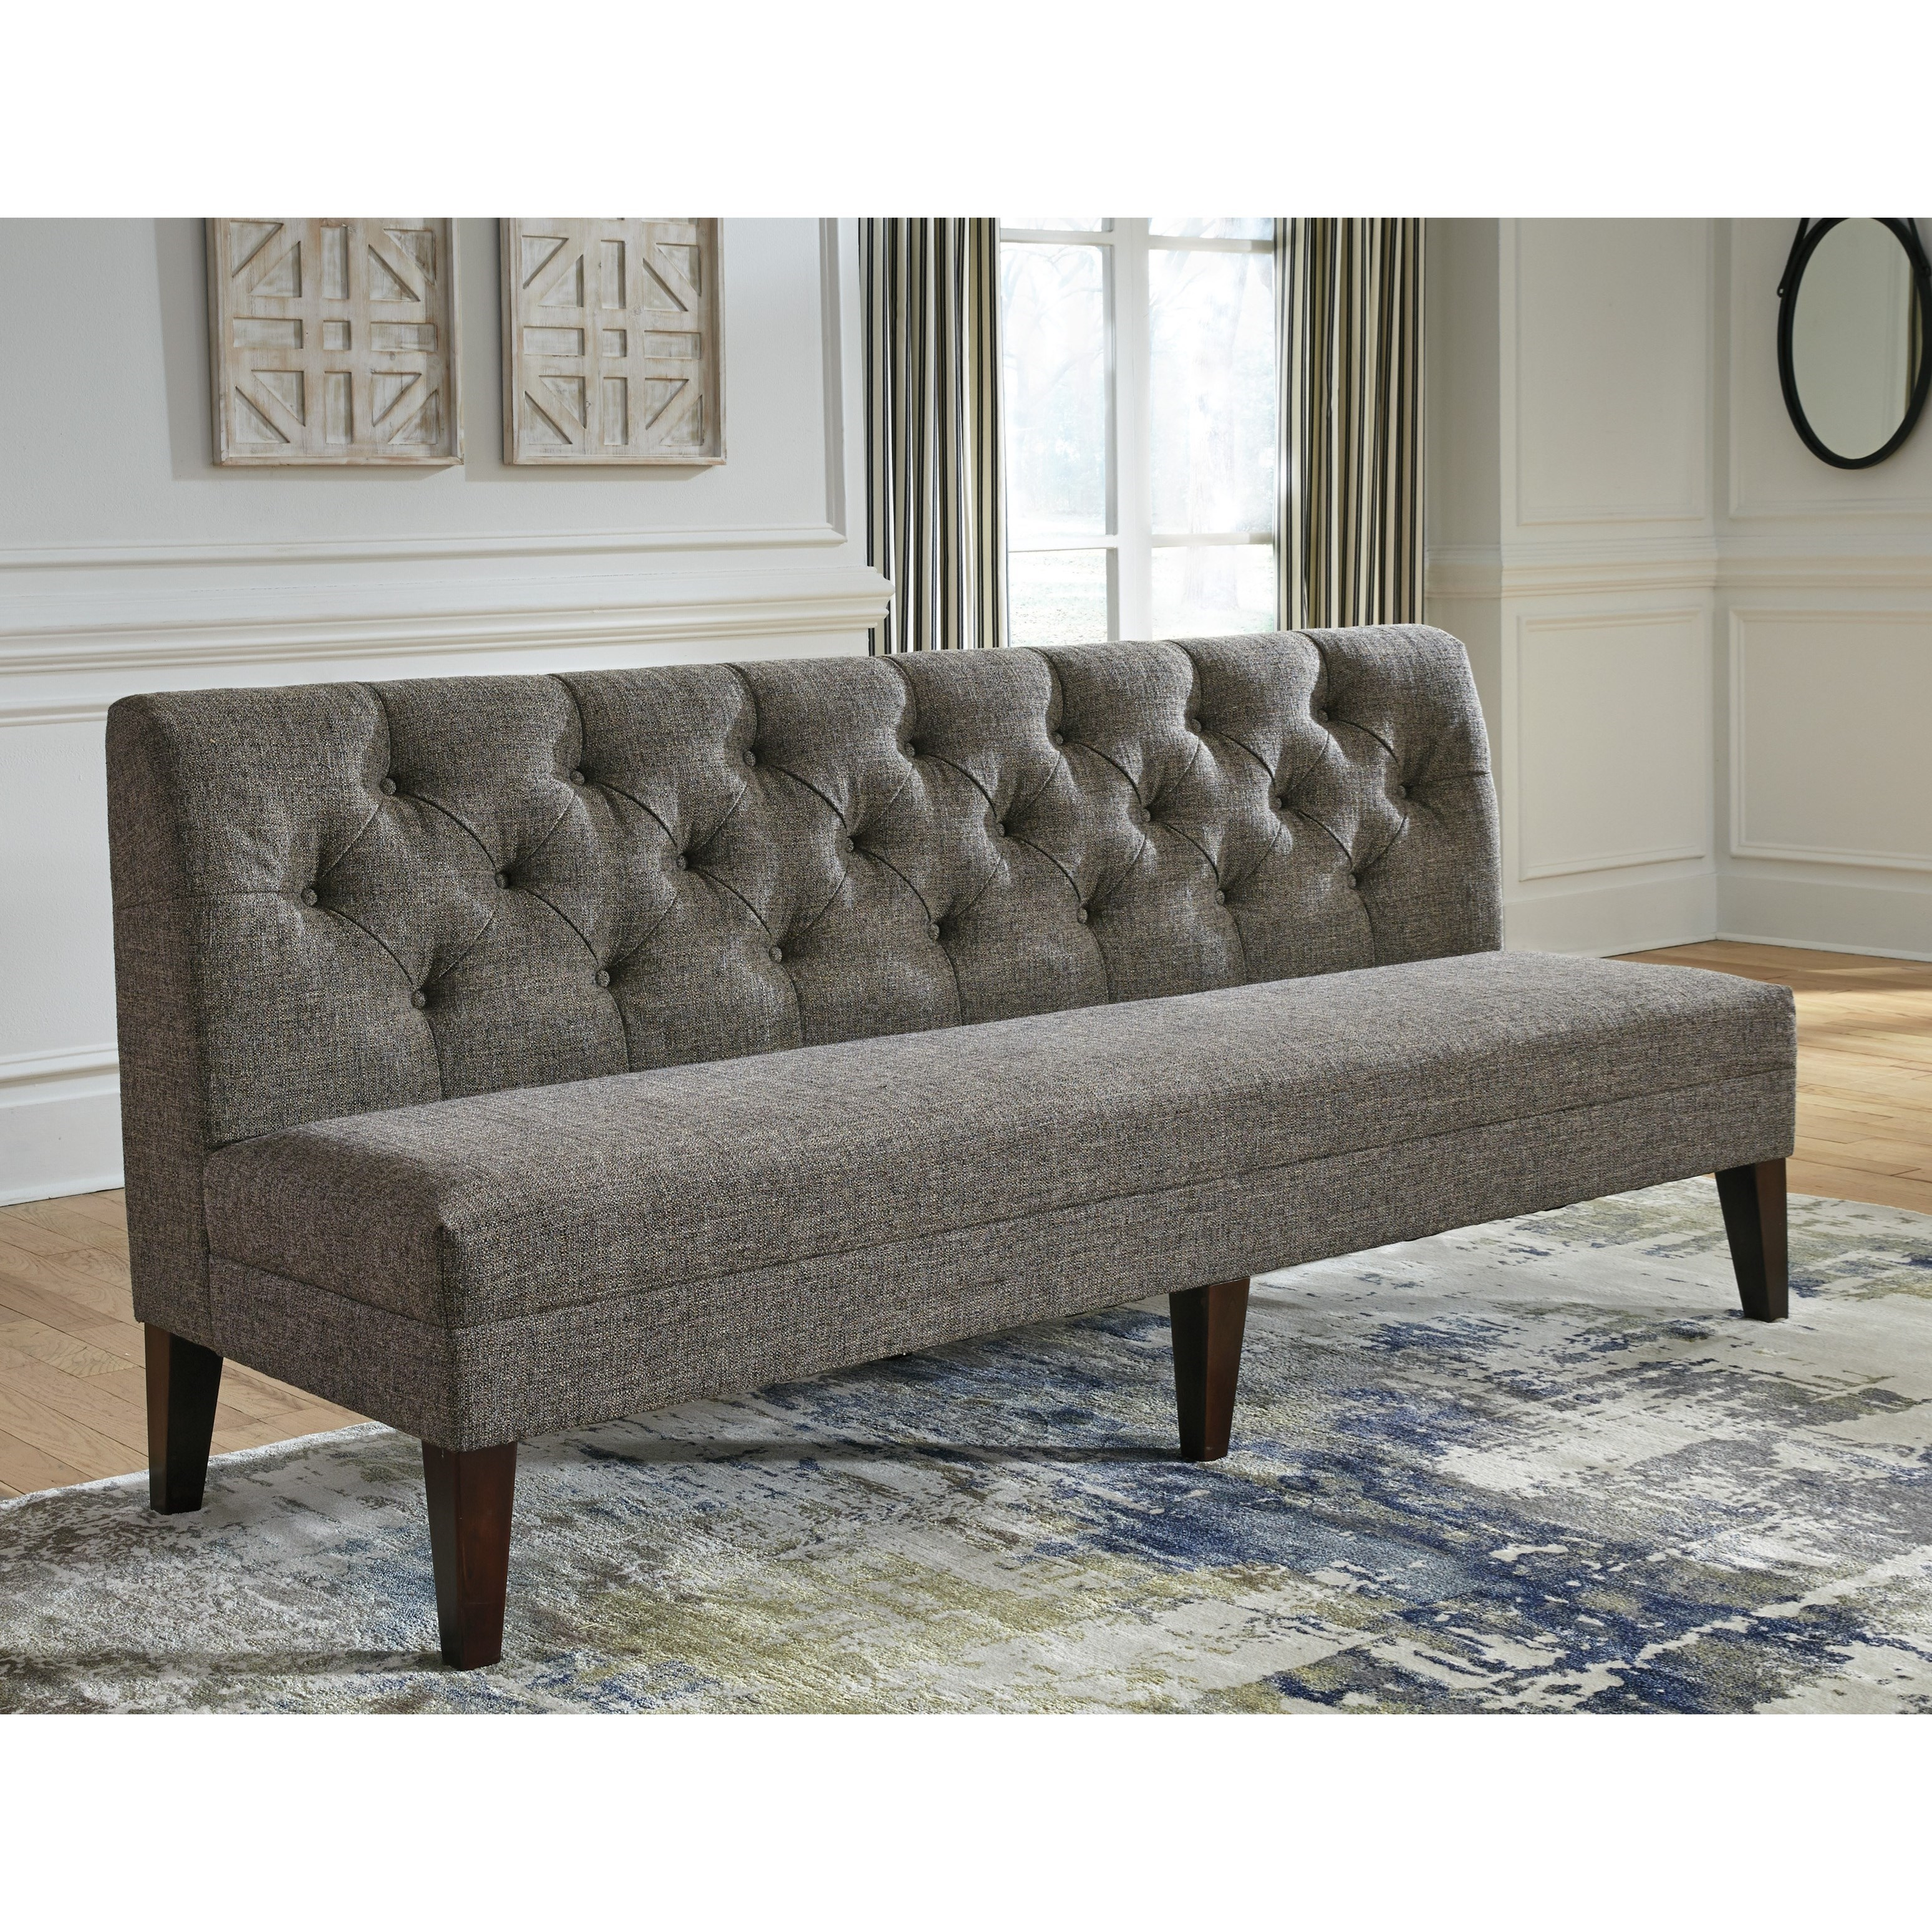 Extra Large Dining Room Sets: Tripton Extra Large Upholstered Dining Room Bench